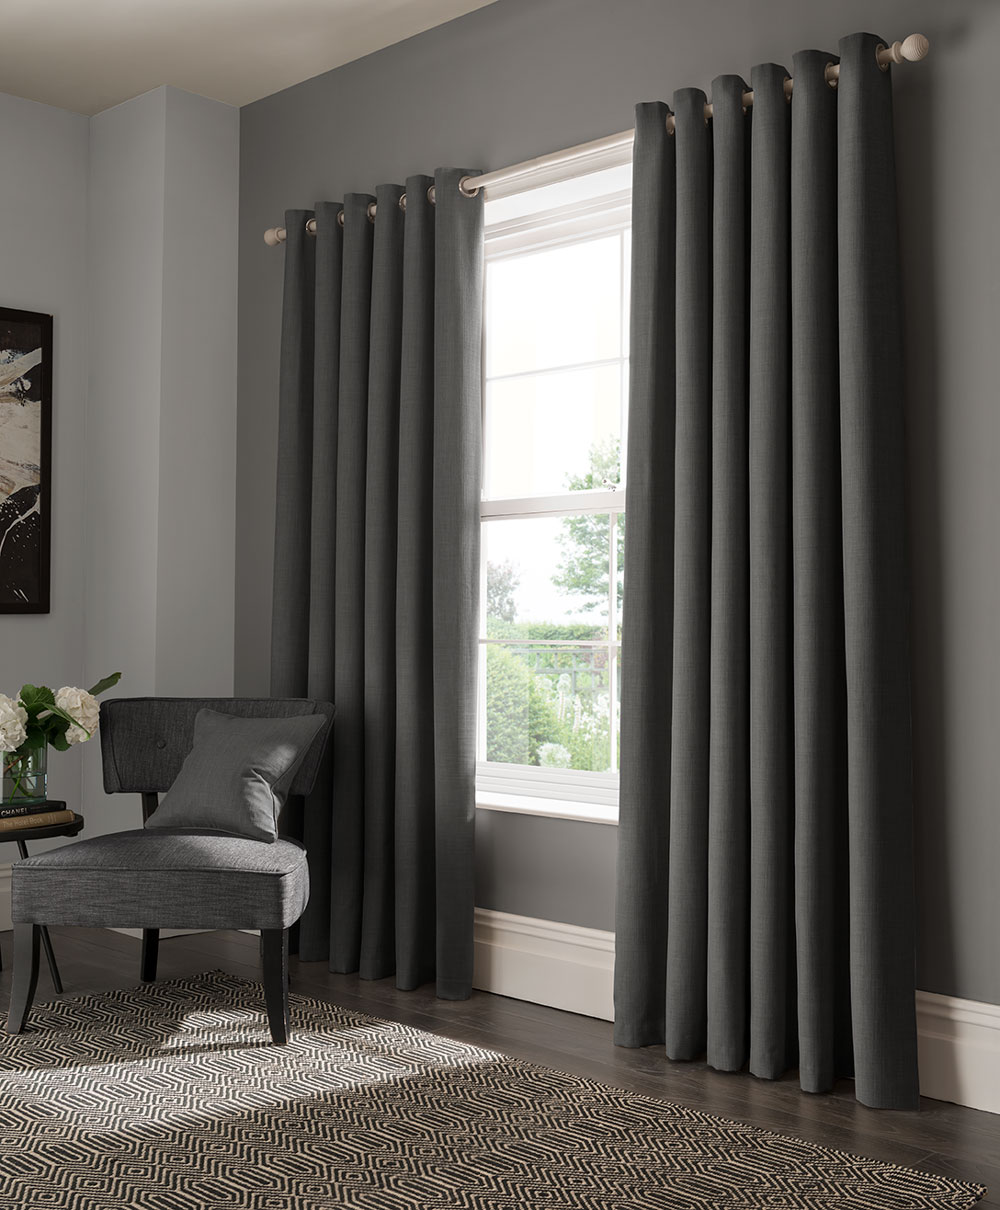 Studio G Elba Eyelet Curtains Steel Ready Made Curtains - Product code: M1104/04/46X9